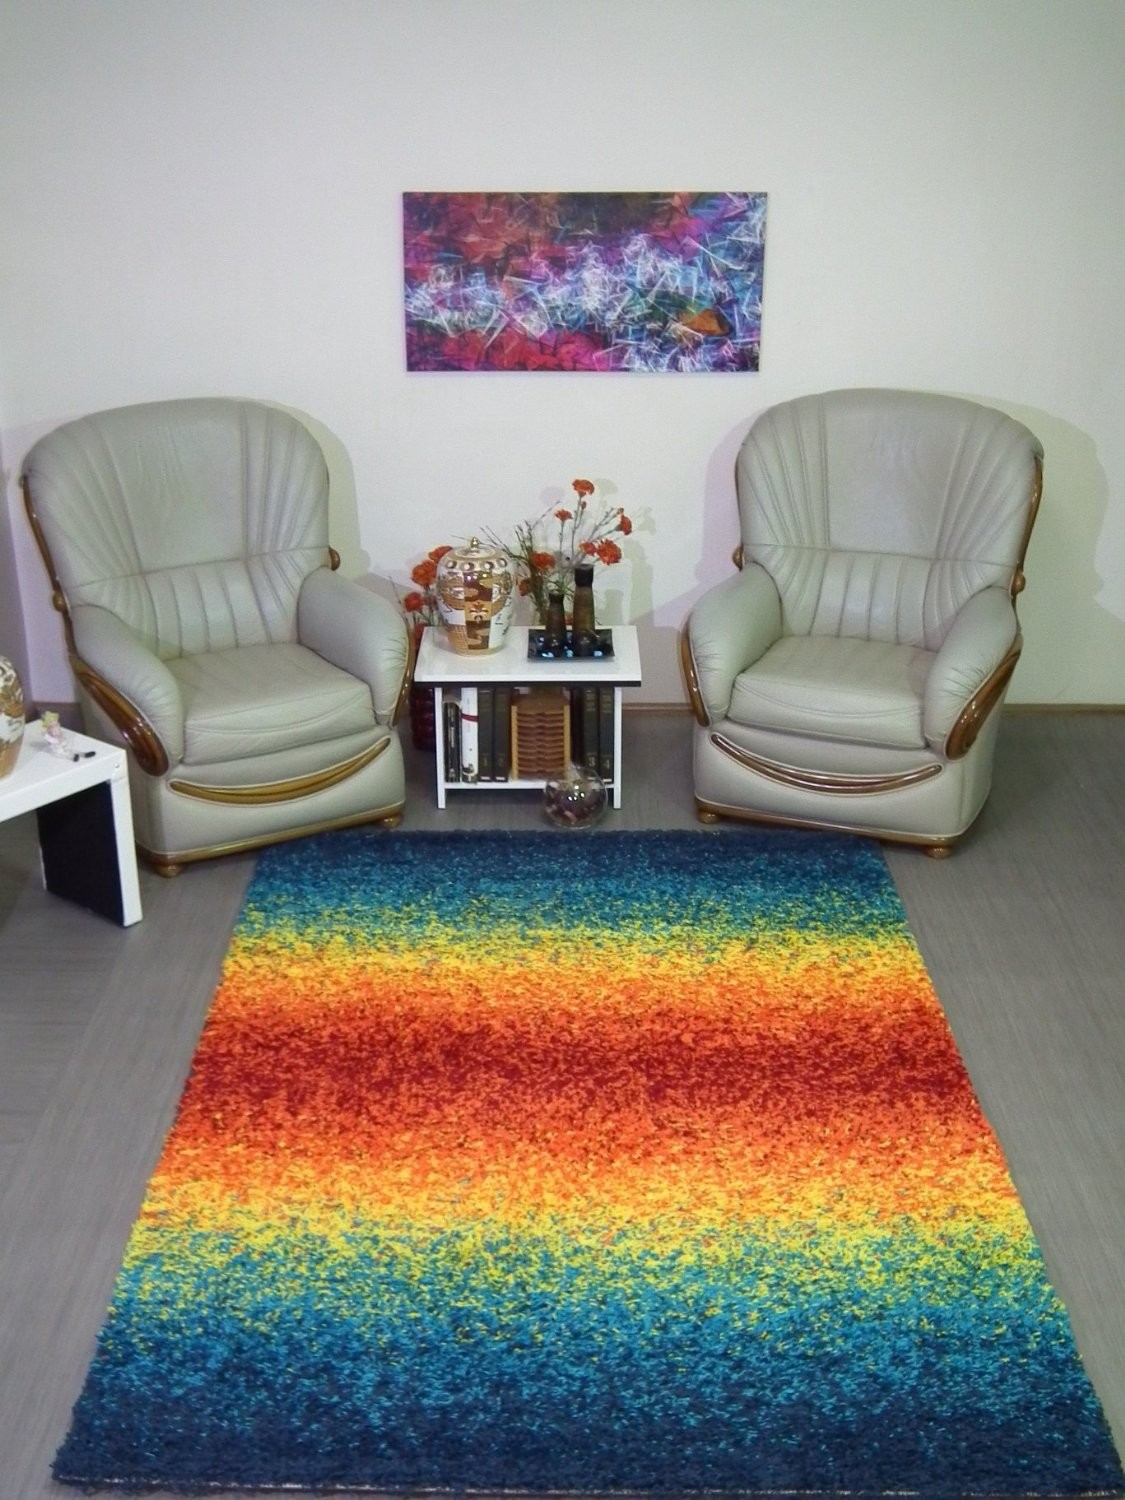 Tapis shaggy longues m ches design tapis multicolore moderne deco - Tapis shaggy multicolore ...